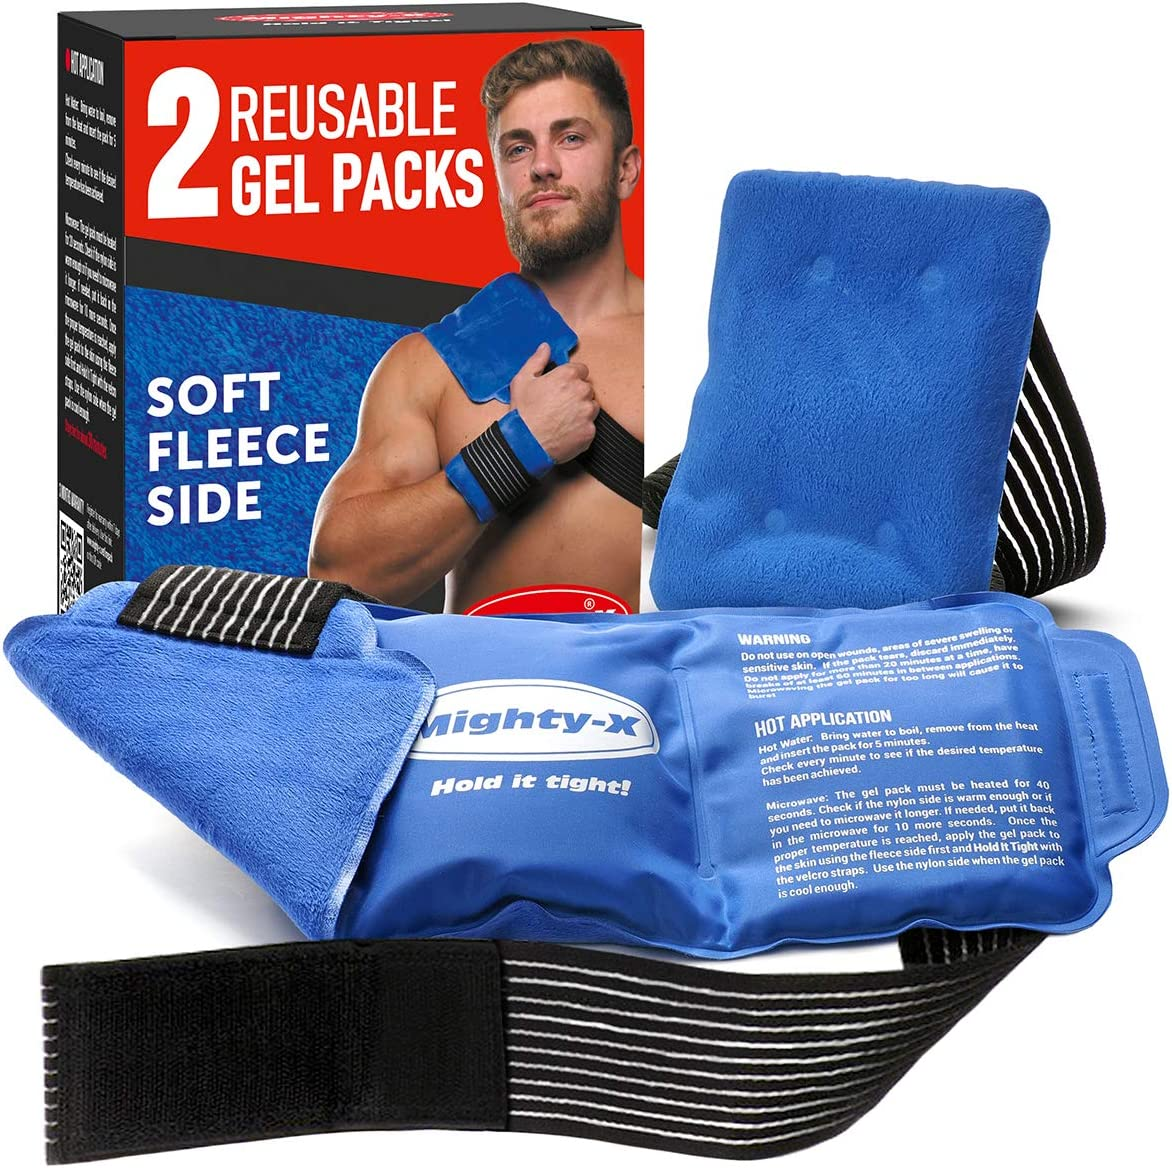 Reusable Ice Packs for Injuries - Premium Cold Packs for Injuries - Soft Fleece Side & Adjustable Straps - 2 Pack (Big - 14 x 6 inches; Small - 6 x 4 inches) - Reusable Ice Pack